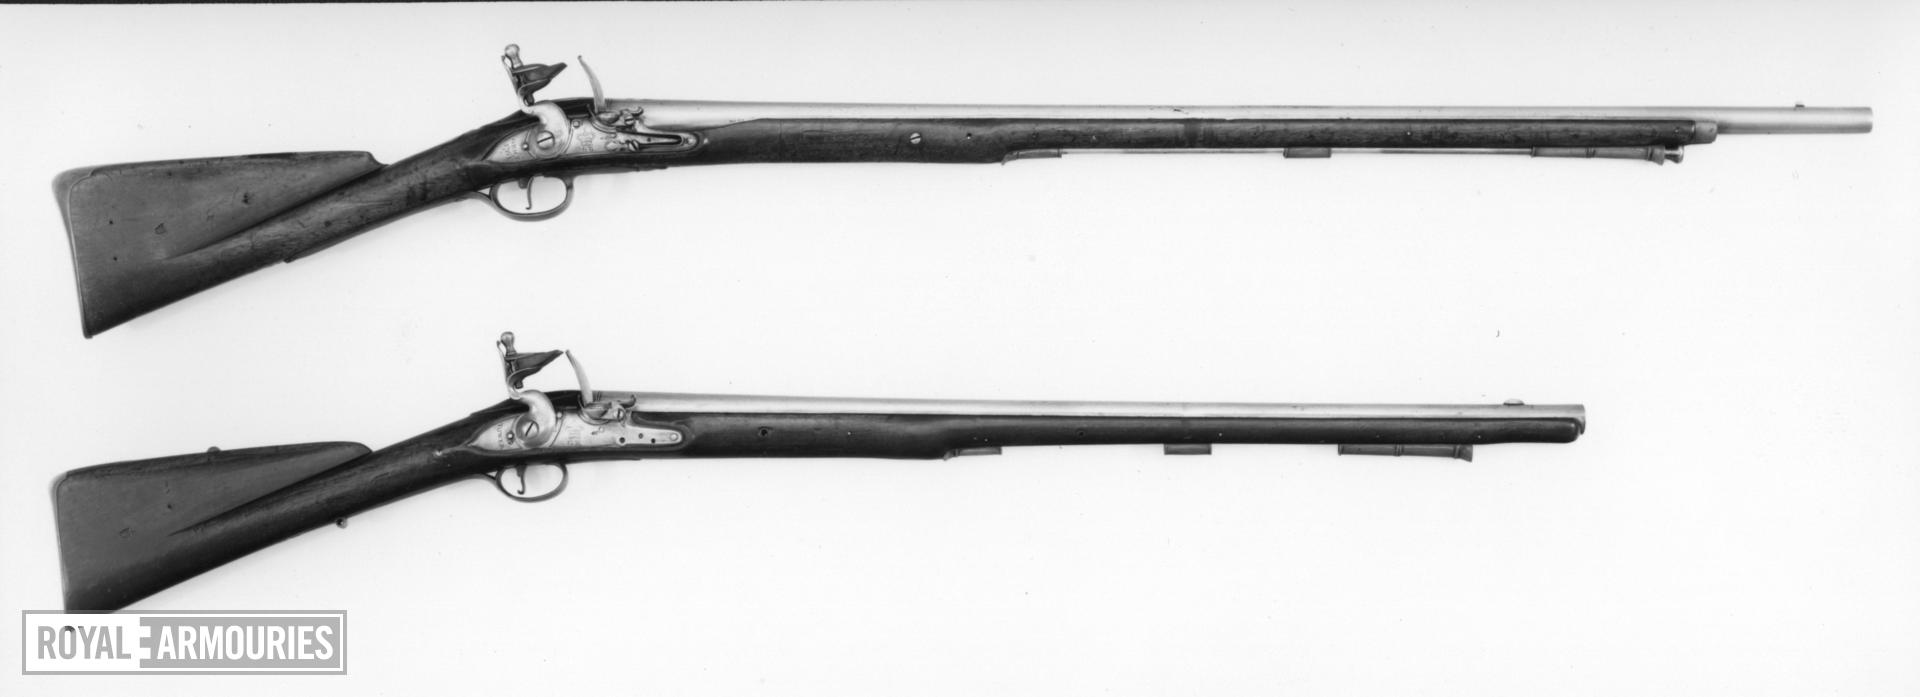 Flintlock muzzle-loading military carbine - Pattern 1756 Light Dragoon by Grice